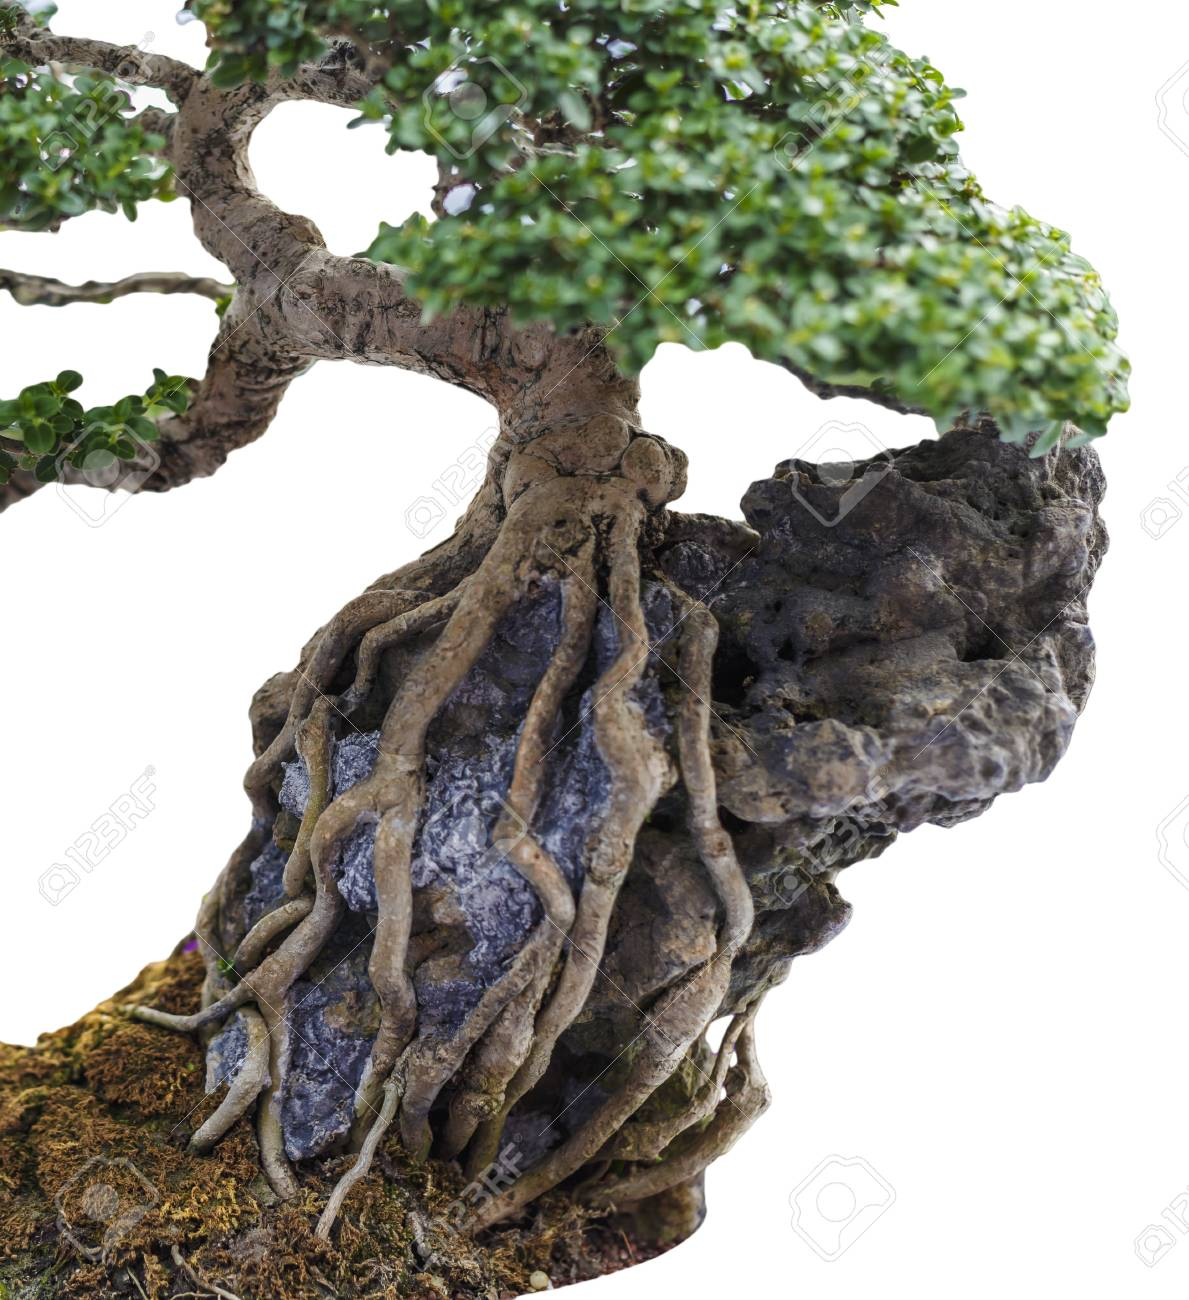 Close Up Of A Knobby Trunk Of An Old Snowrose Bonsai Tree Stock Photo Picture And Royalty Free Image Image 64643540